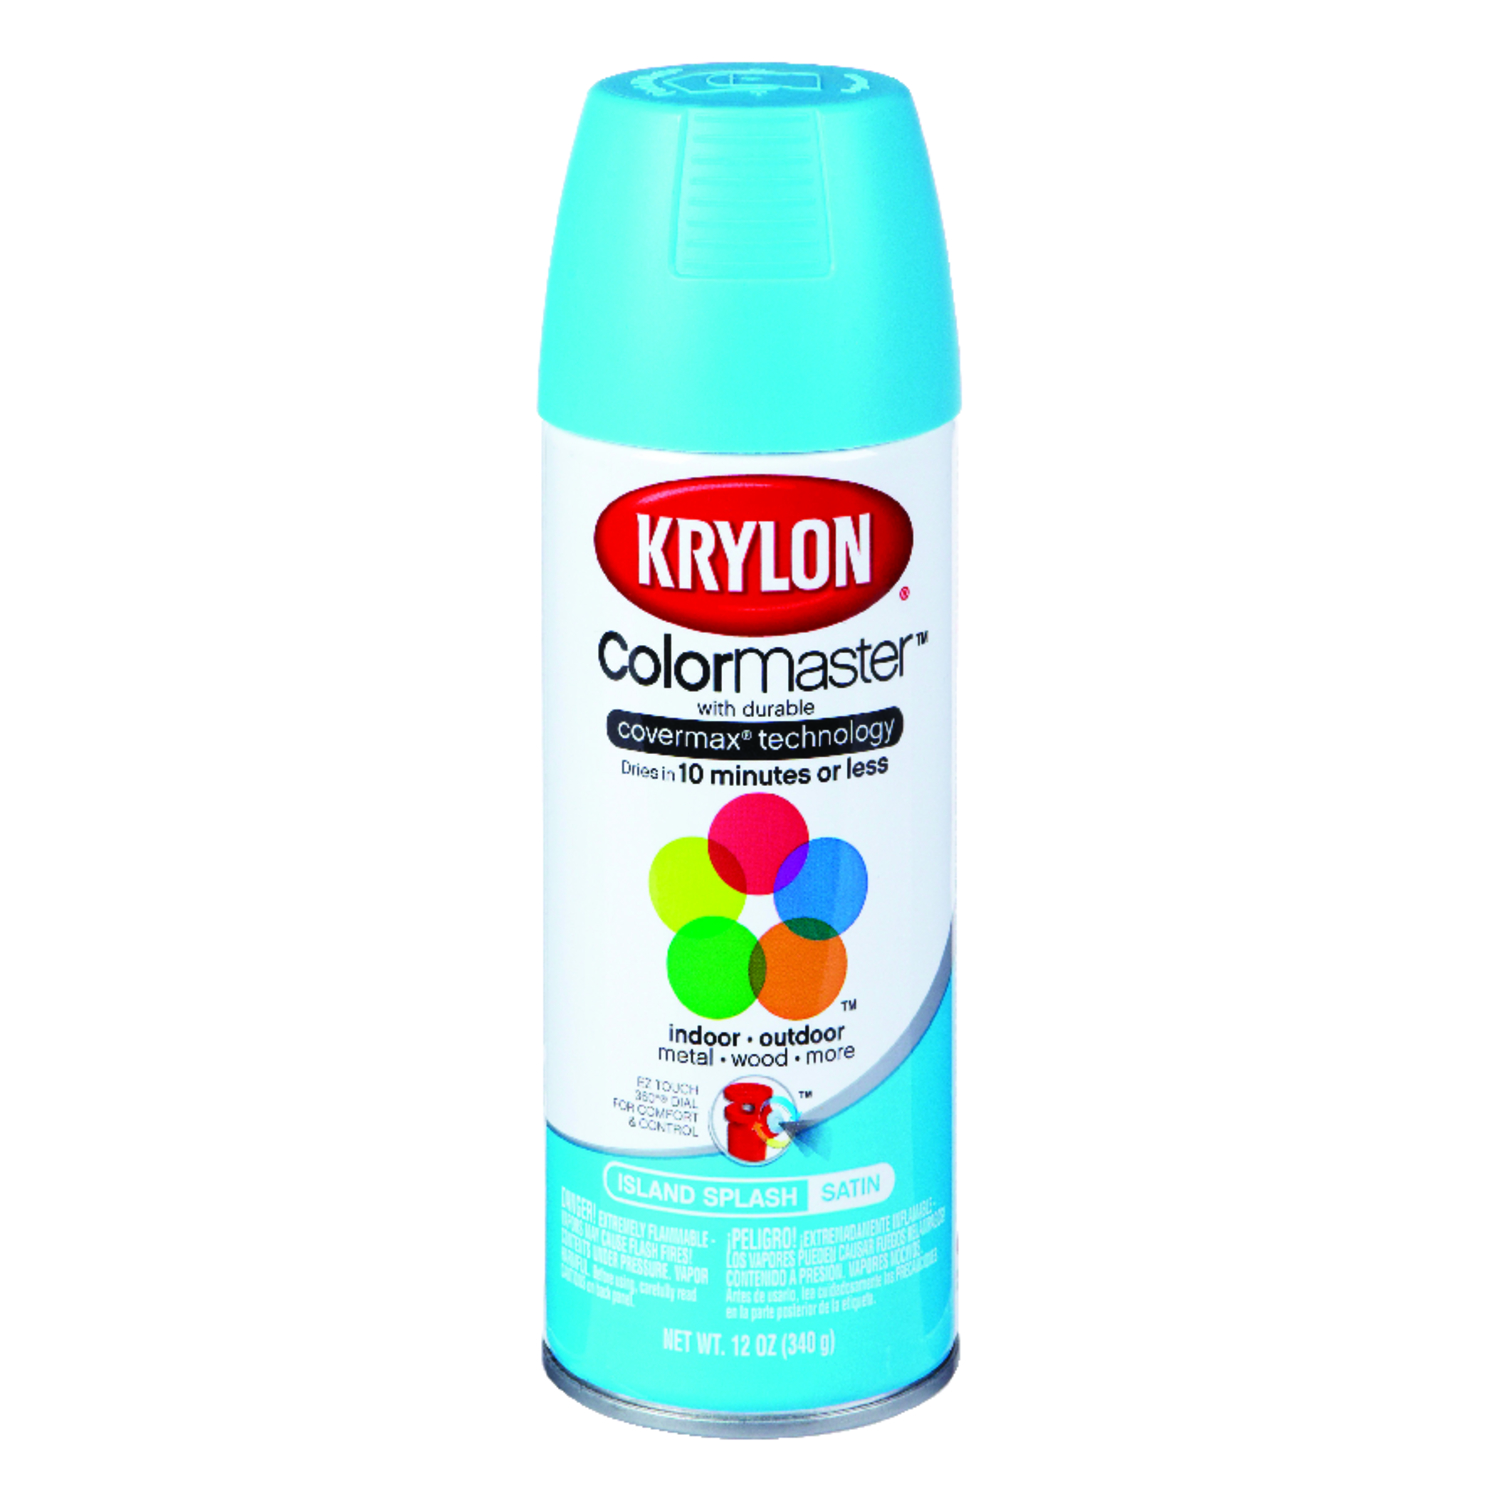 Krylon  ColorMaster  Satin  Spray Paint  12 oz. Island Splash